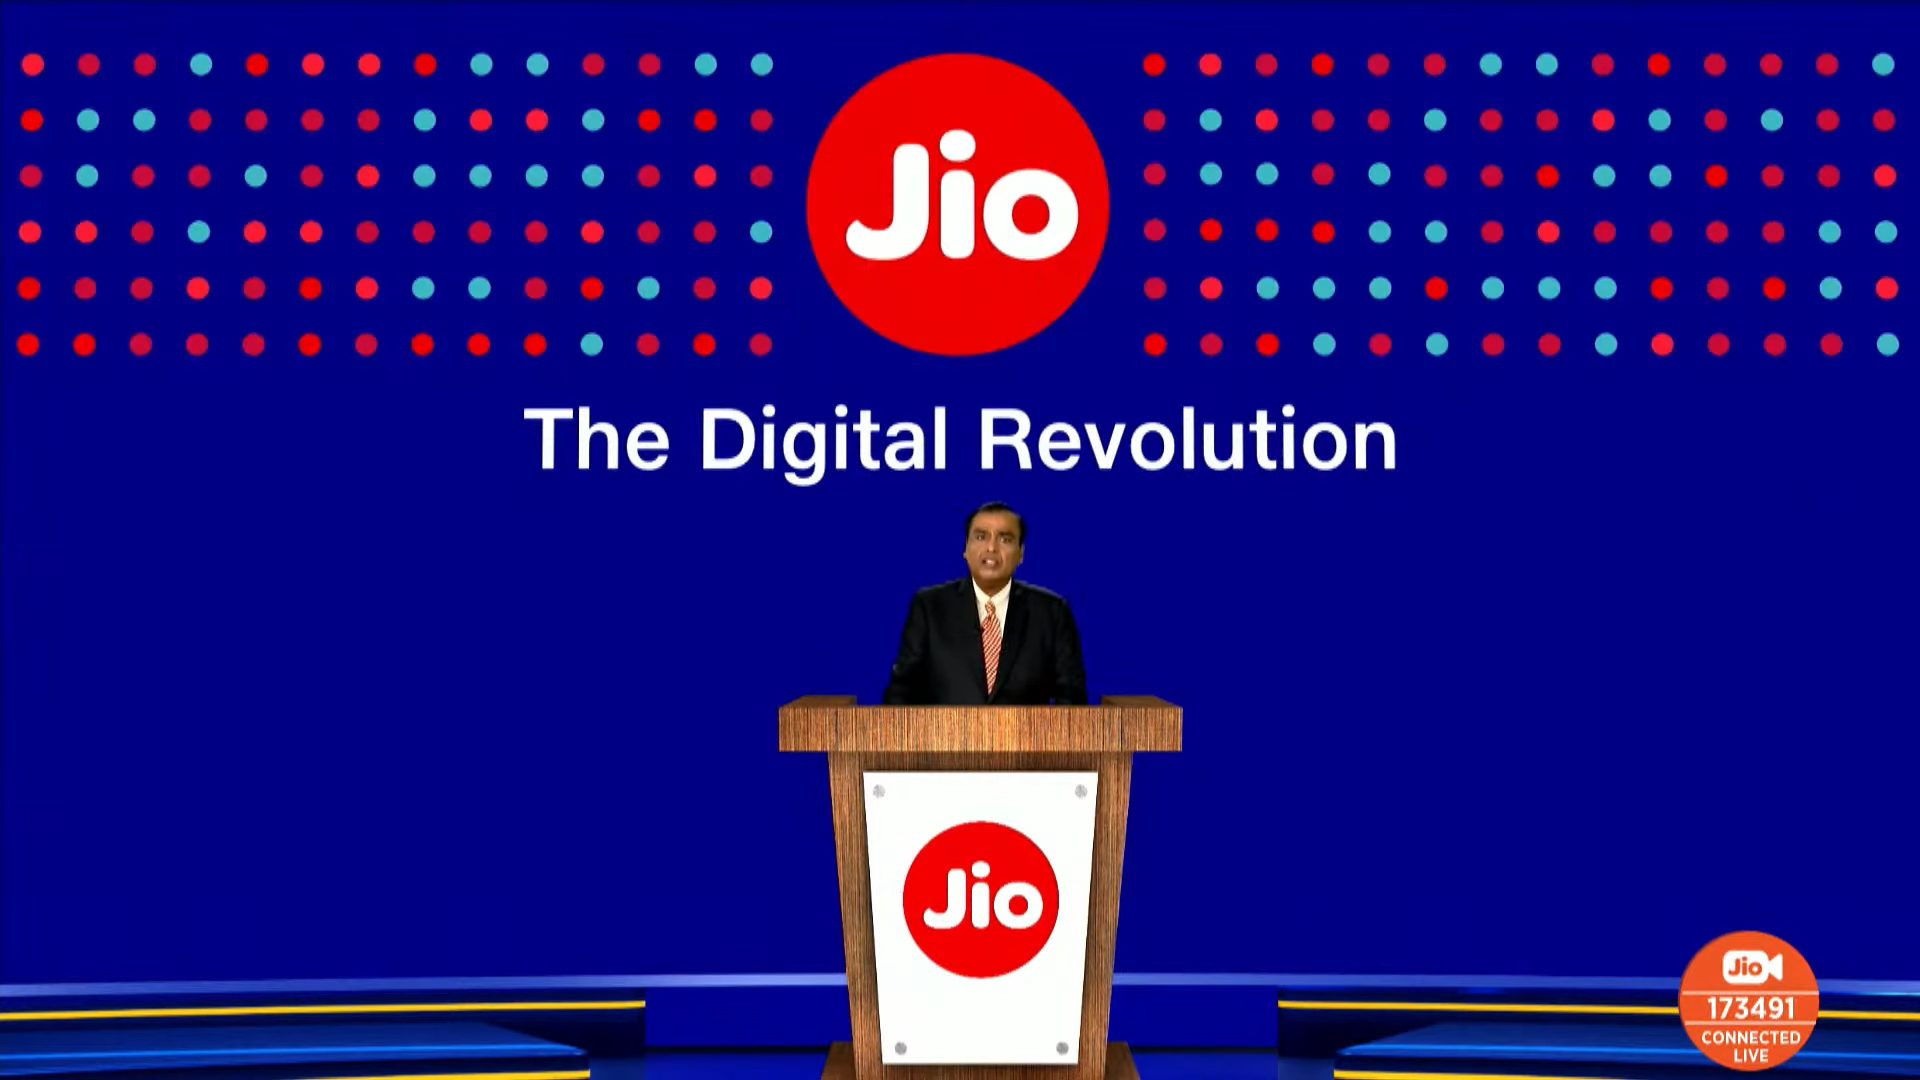 Reliance Jio: From Telecom Operator to Solutions Provider